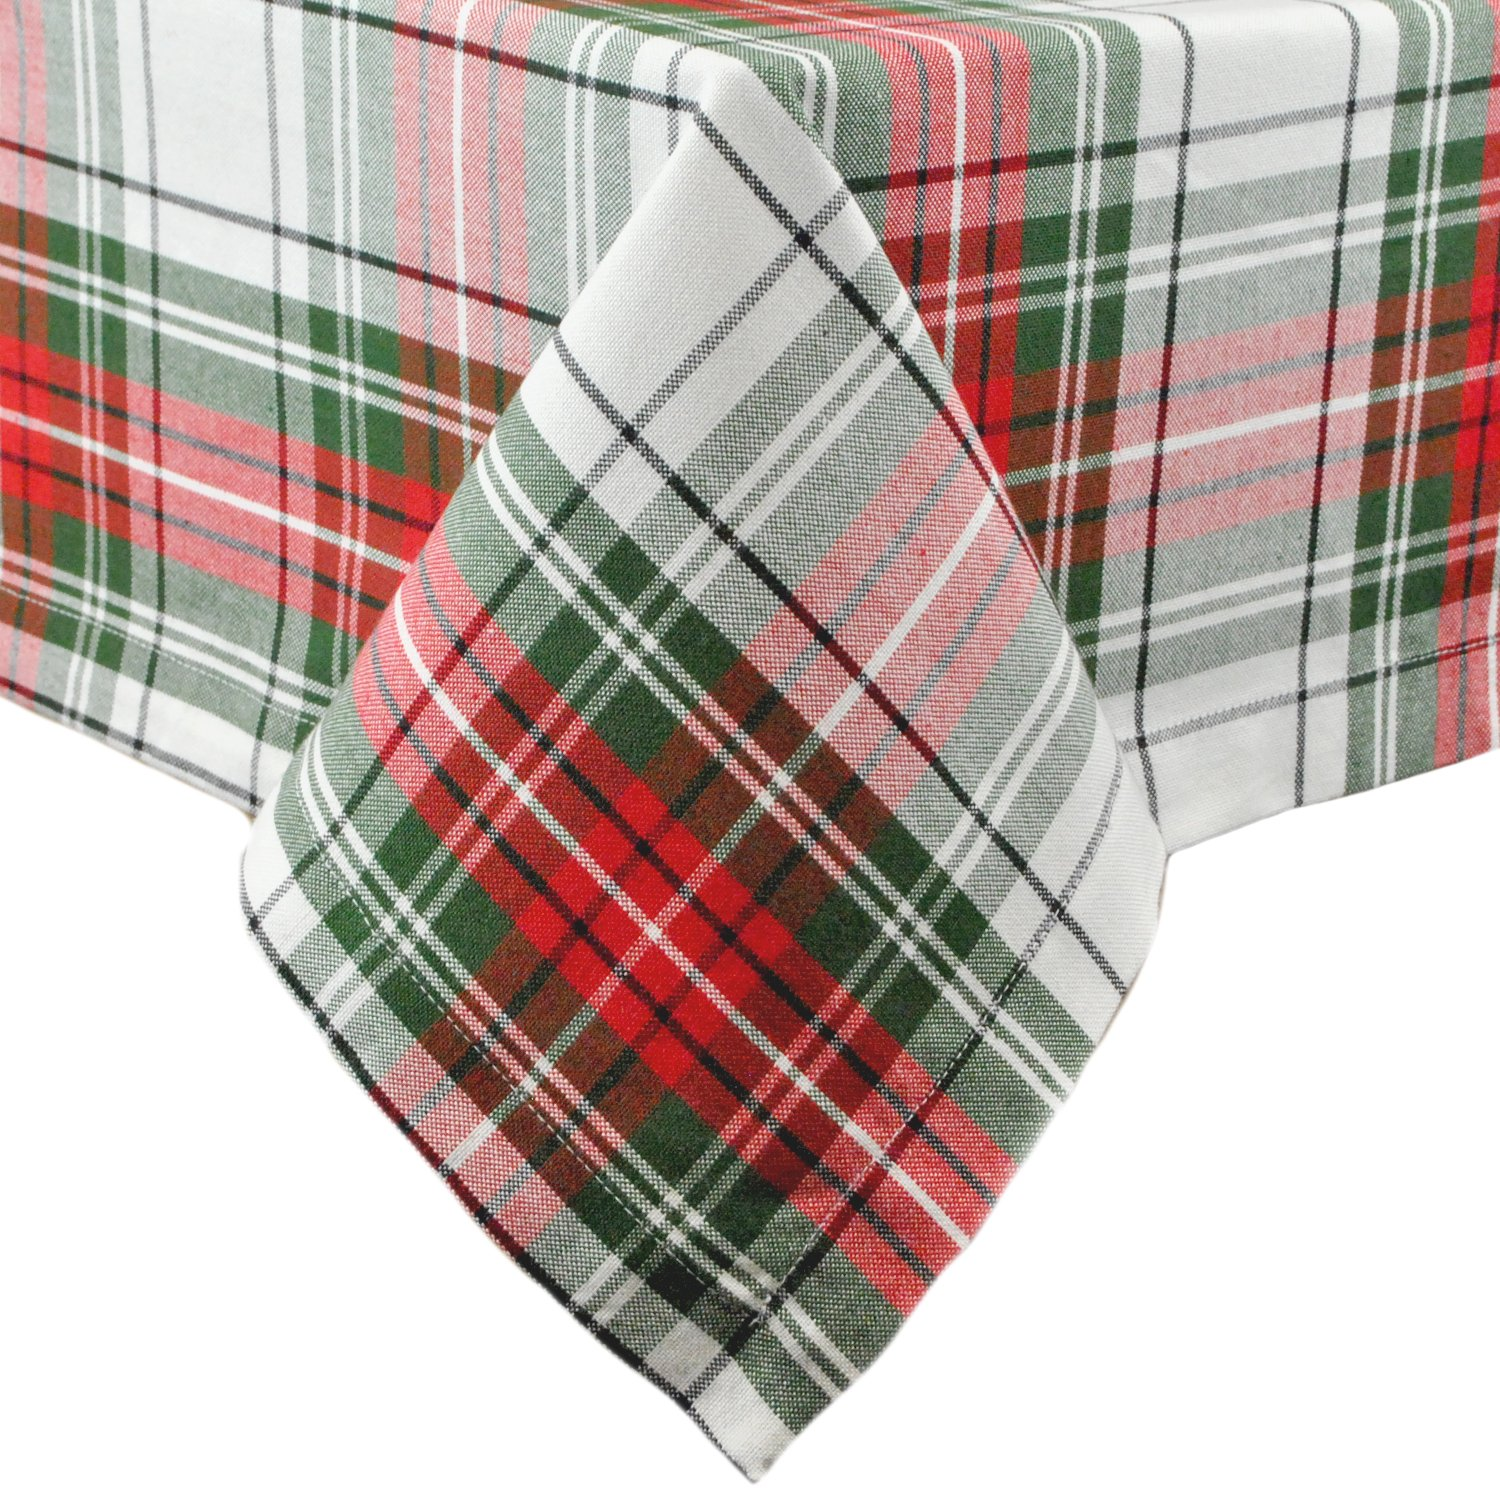 DII 60x104'' Rectangular Cotton Tablecloth, Christmas Plaid - Perfect for Dinner Parties, Christmas, Holidays, or Everyday use